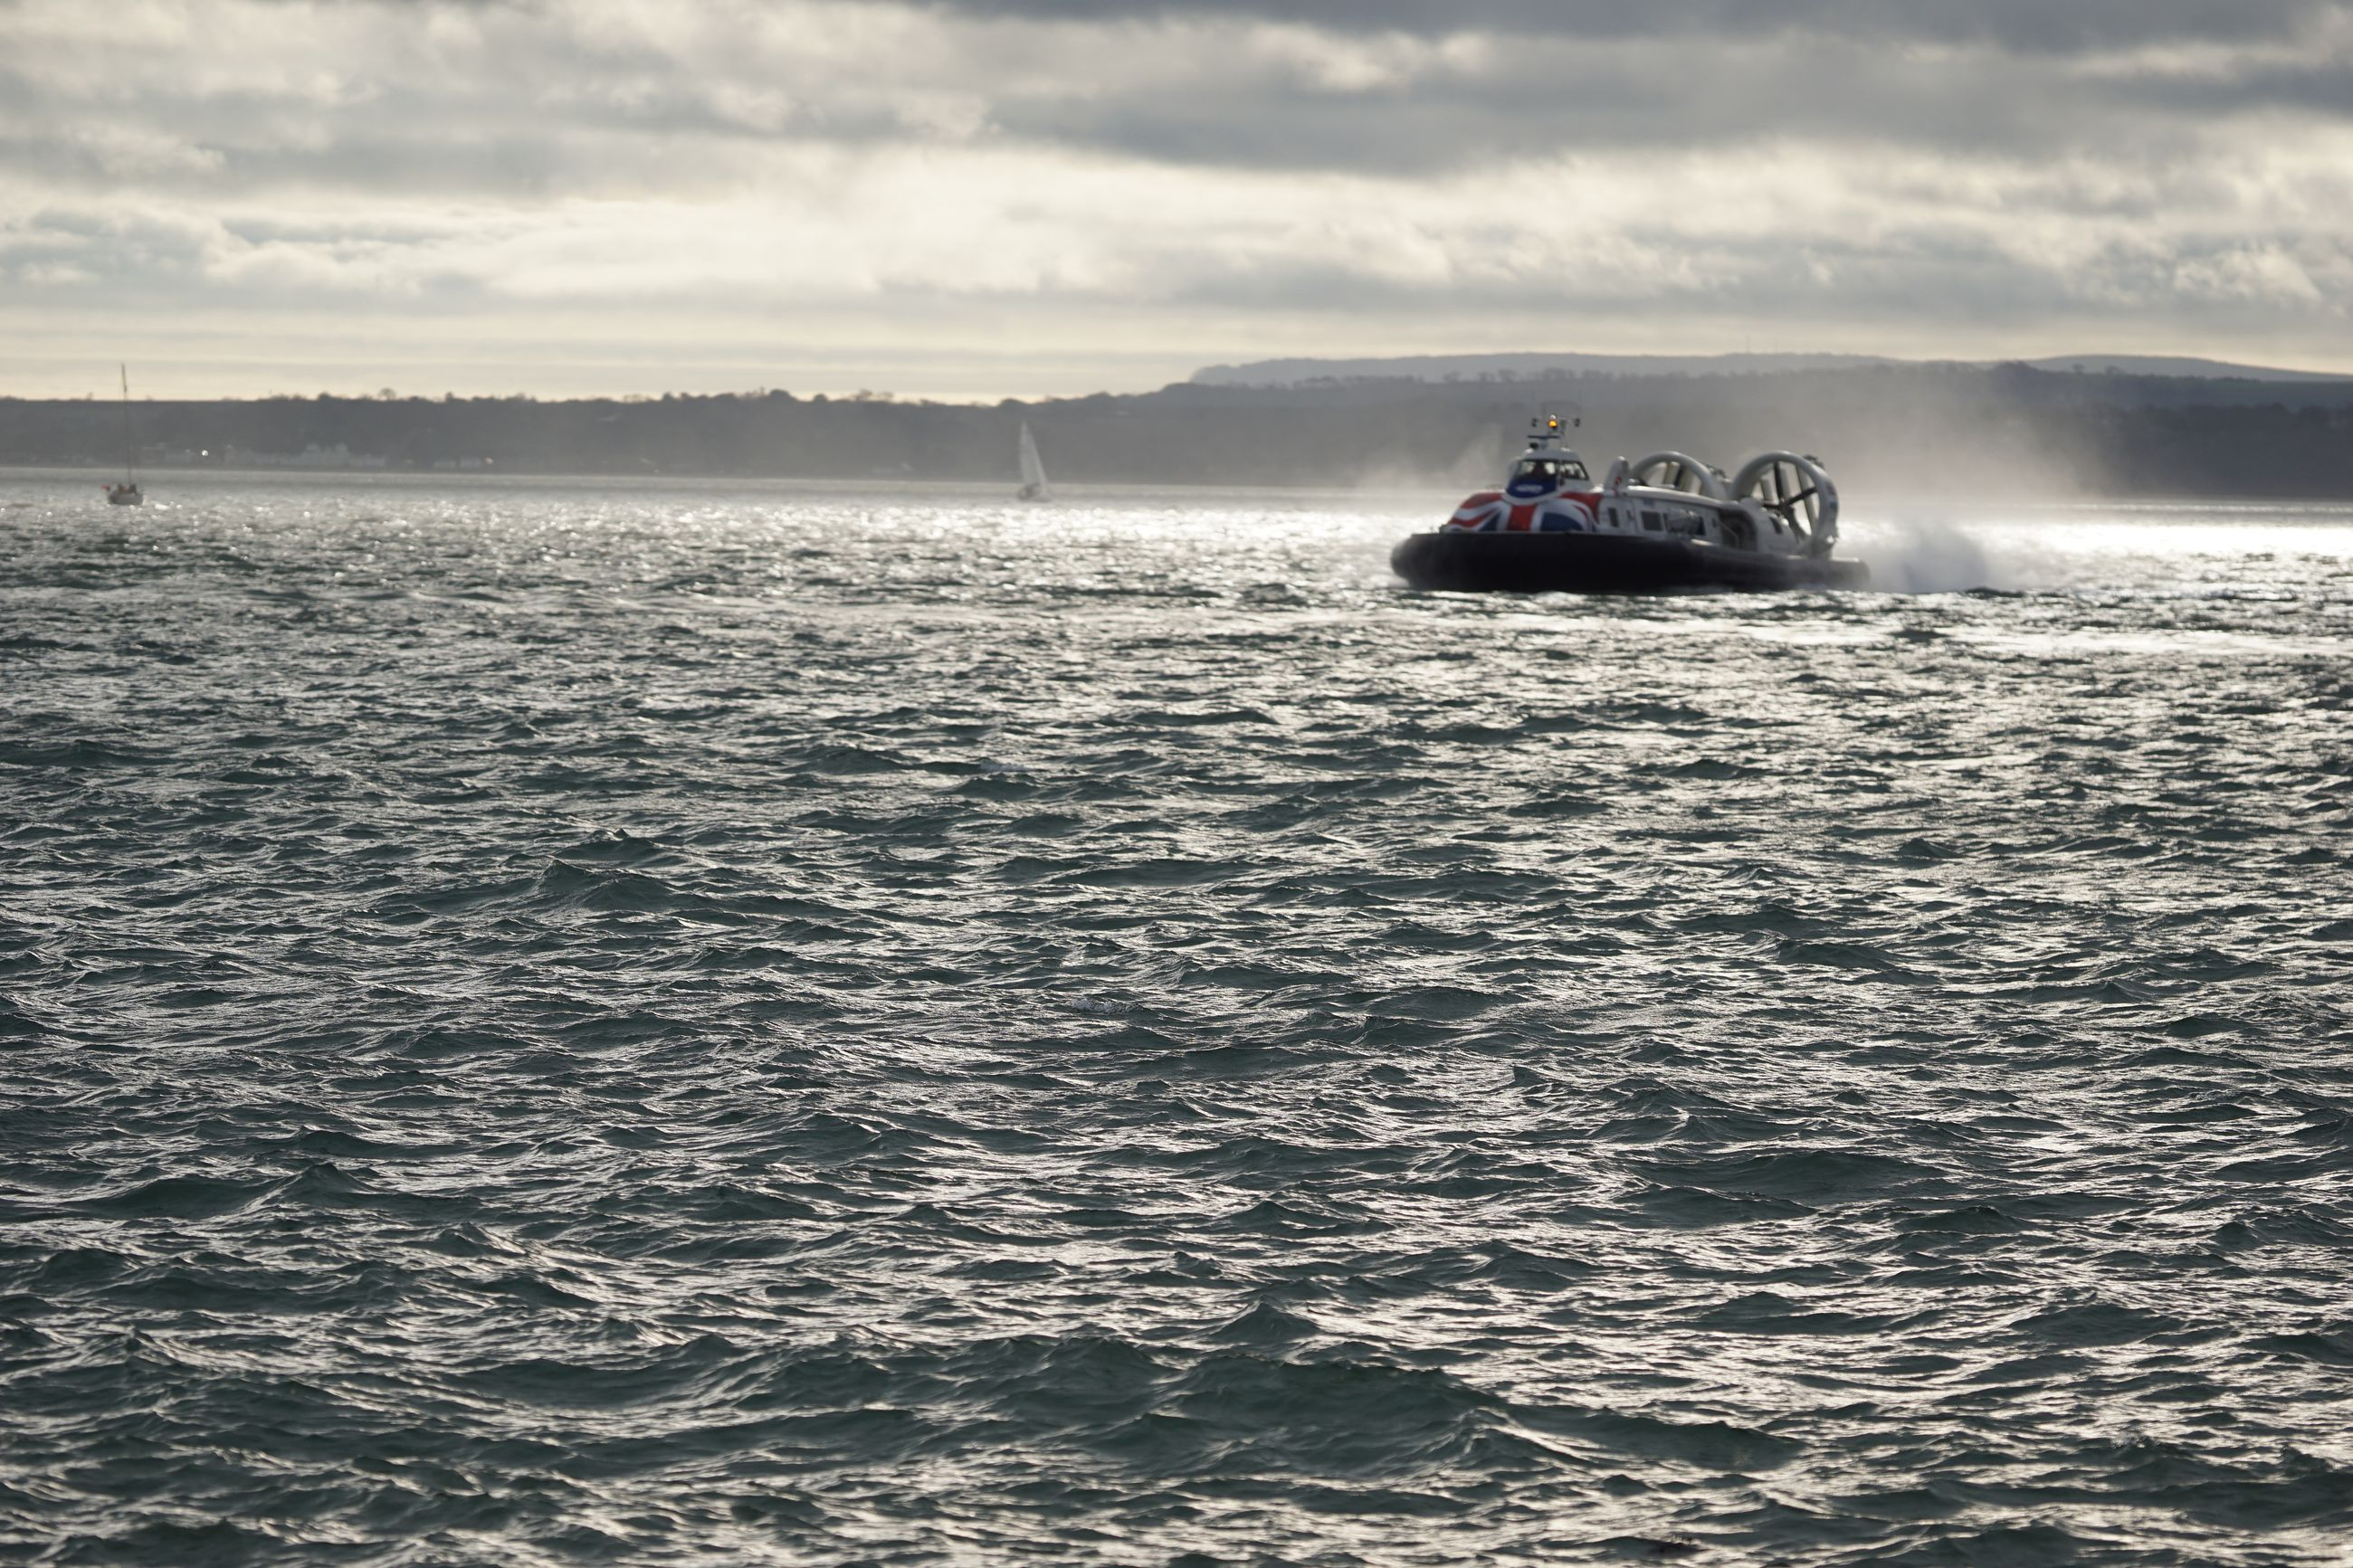 water, mode of transportation, transportation, waterfront, nautical vessel, sea, sky, travel, scenics - nature, nature, cloud - sky, beauty in nature, motion, sailing, day, on the move, outdoors, journey, wave pattern